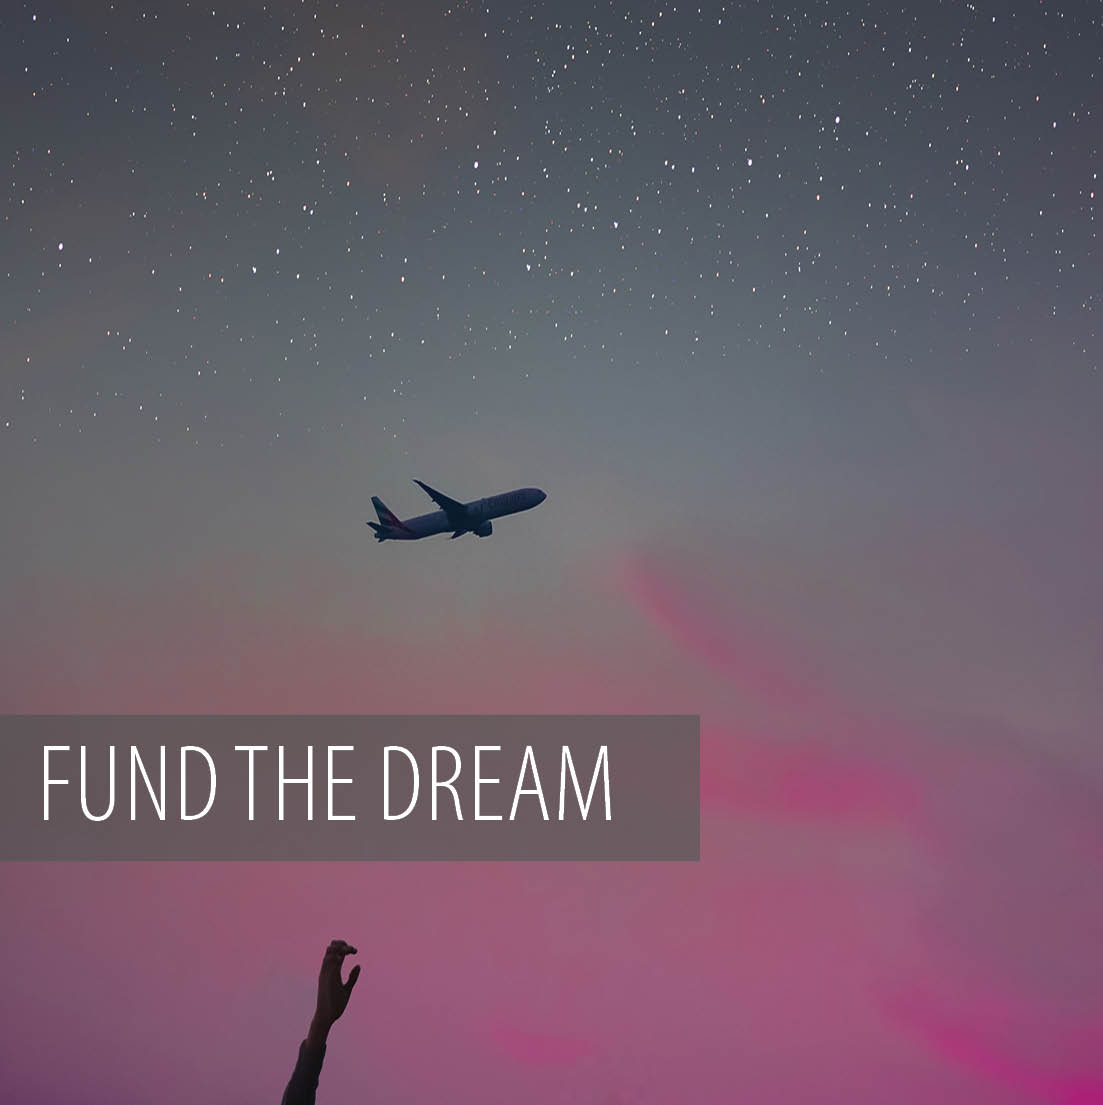 Fund the Dream